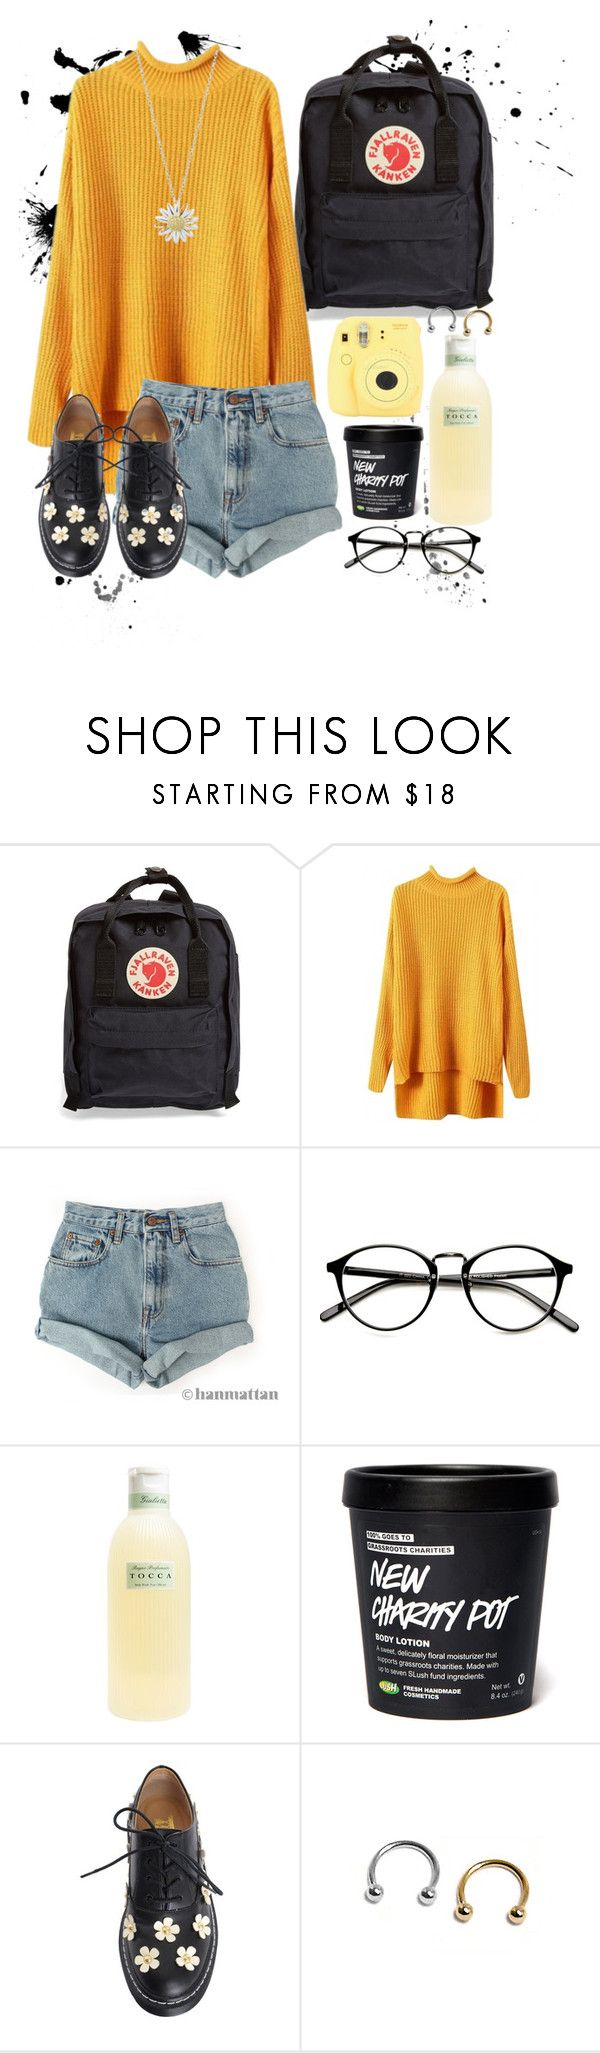 """""""art hoe kit."""" by ma-mode ❤ liked on Polyvore featuring Fjällräven, Levi's, Tocca and Daisy Jewellery"""